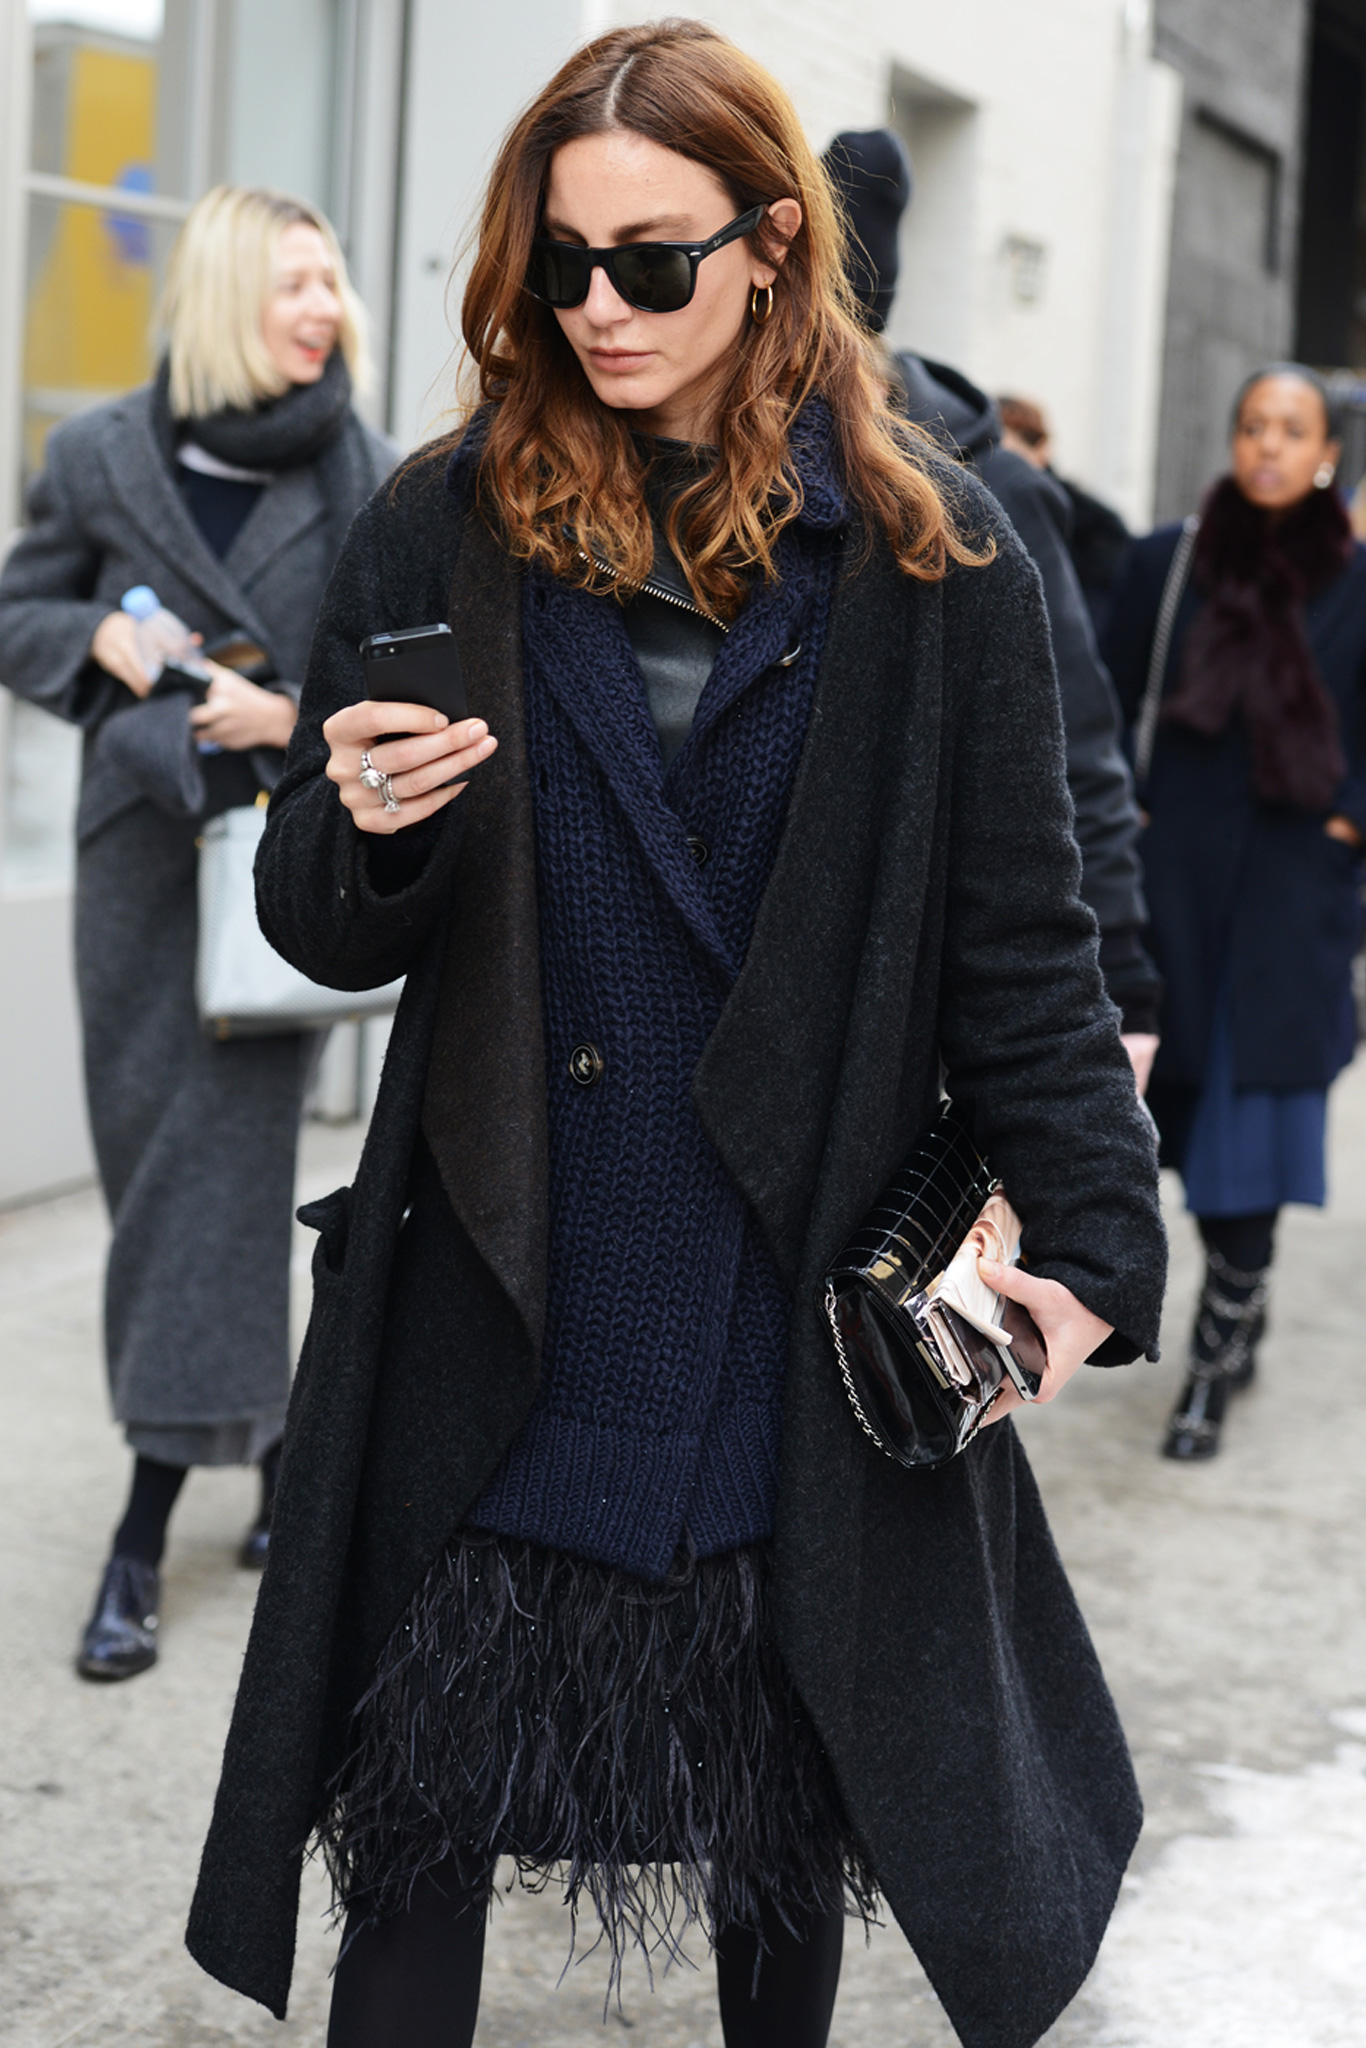 Ece Sukan mixed her feathered skirt with other textures, like a thick knit and fuzzy coat.